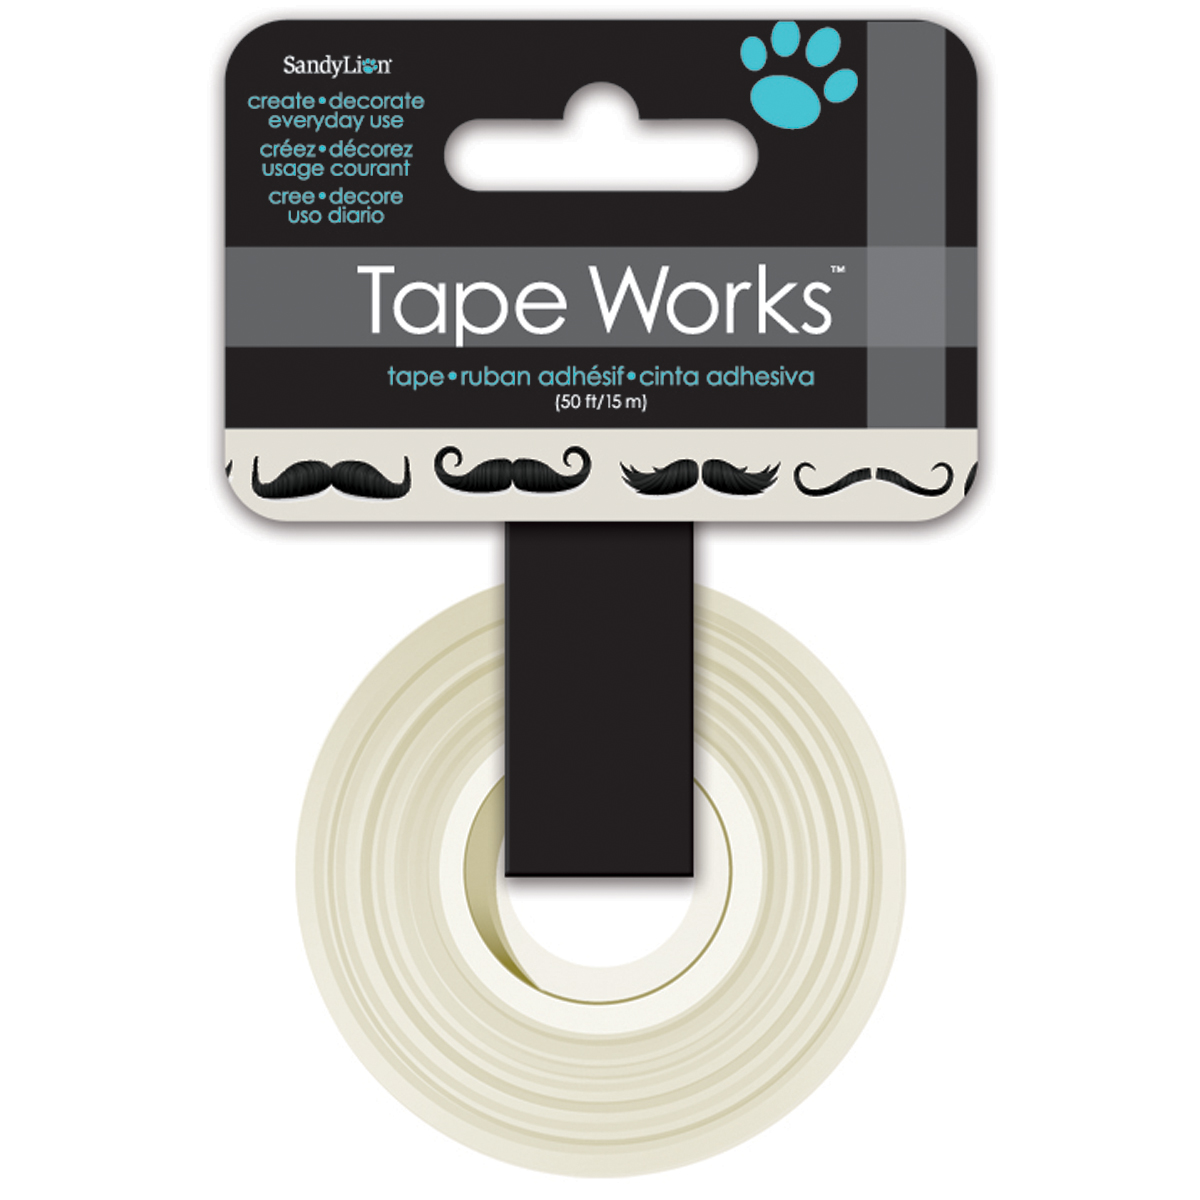 Tape Works Tape .625 Inch X 50ft-Mustaches, Black & White